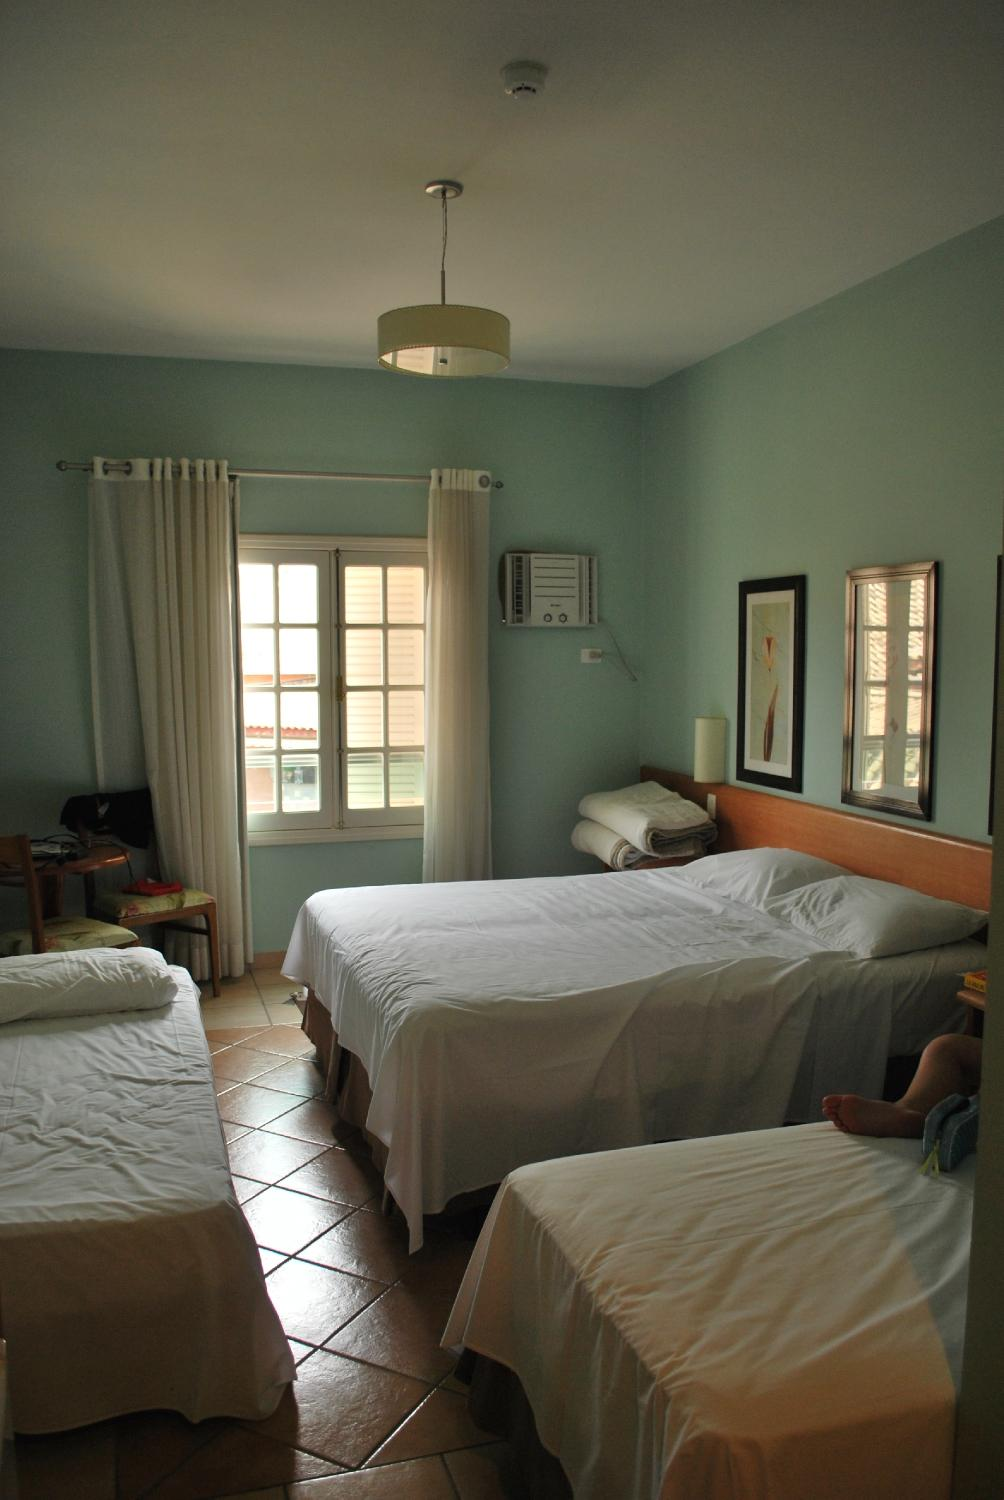 Cordialle Hotel